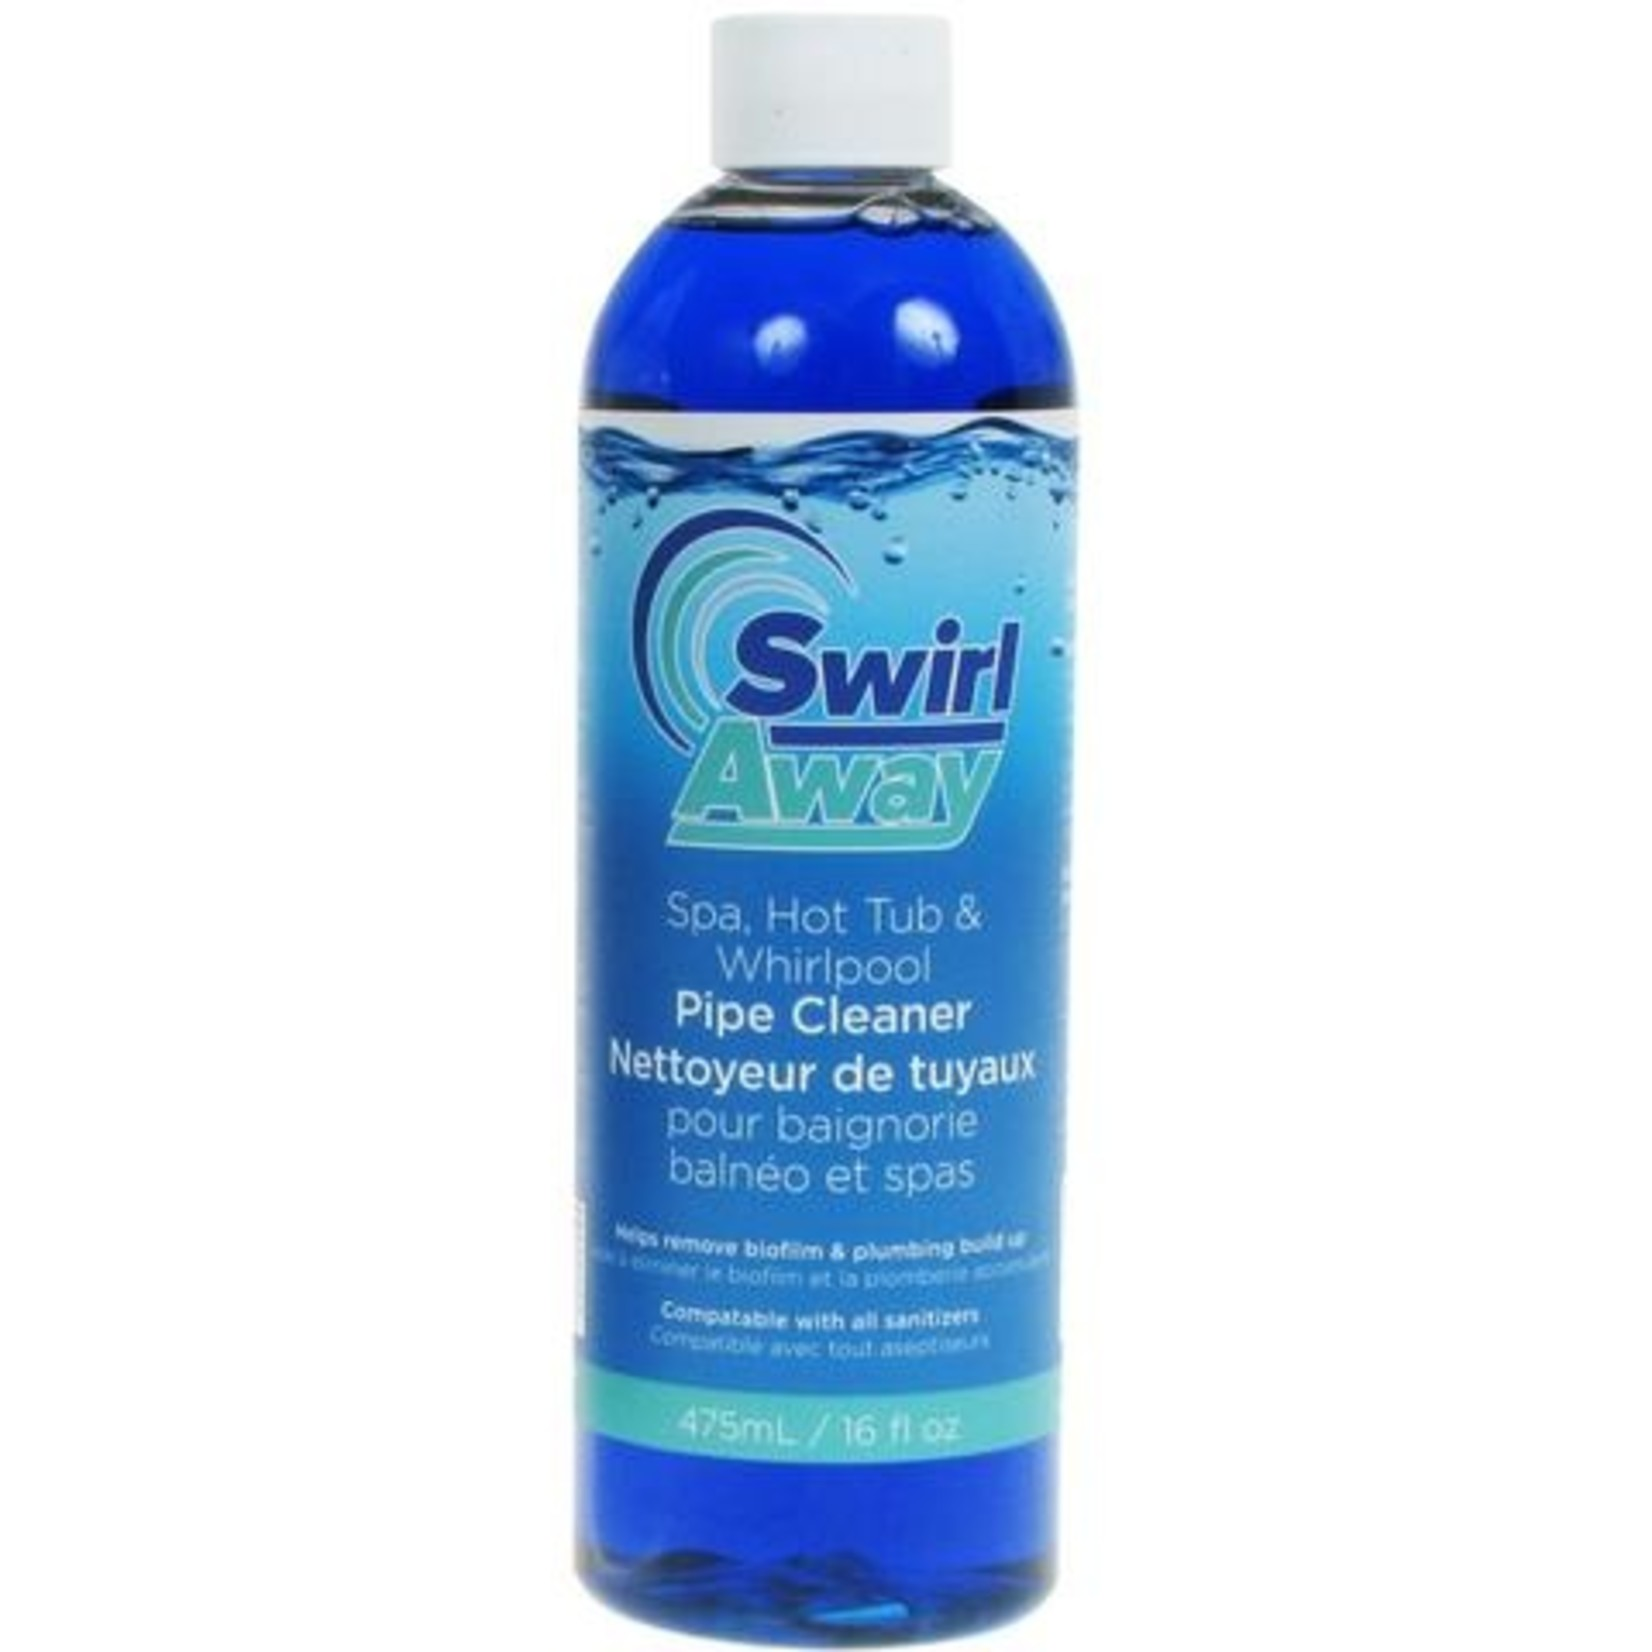 SpaGuard Swirl Away® Pipe Cleaner (475 mL)